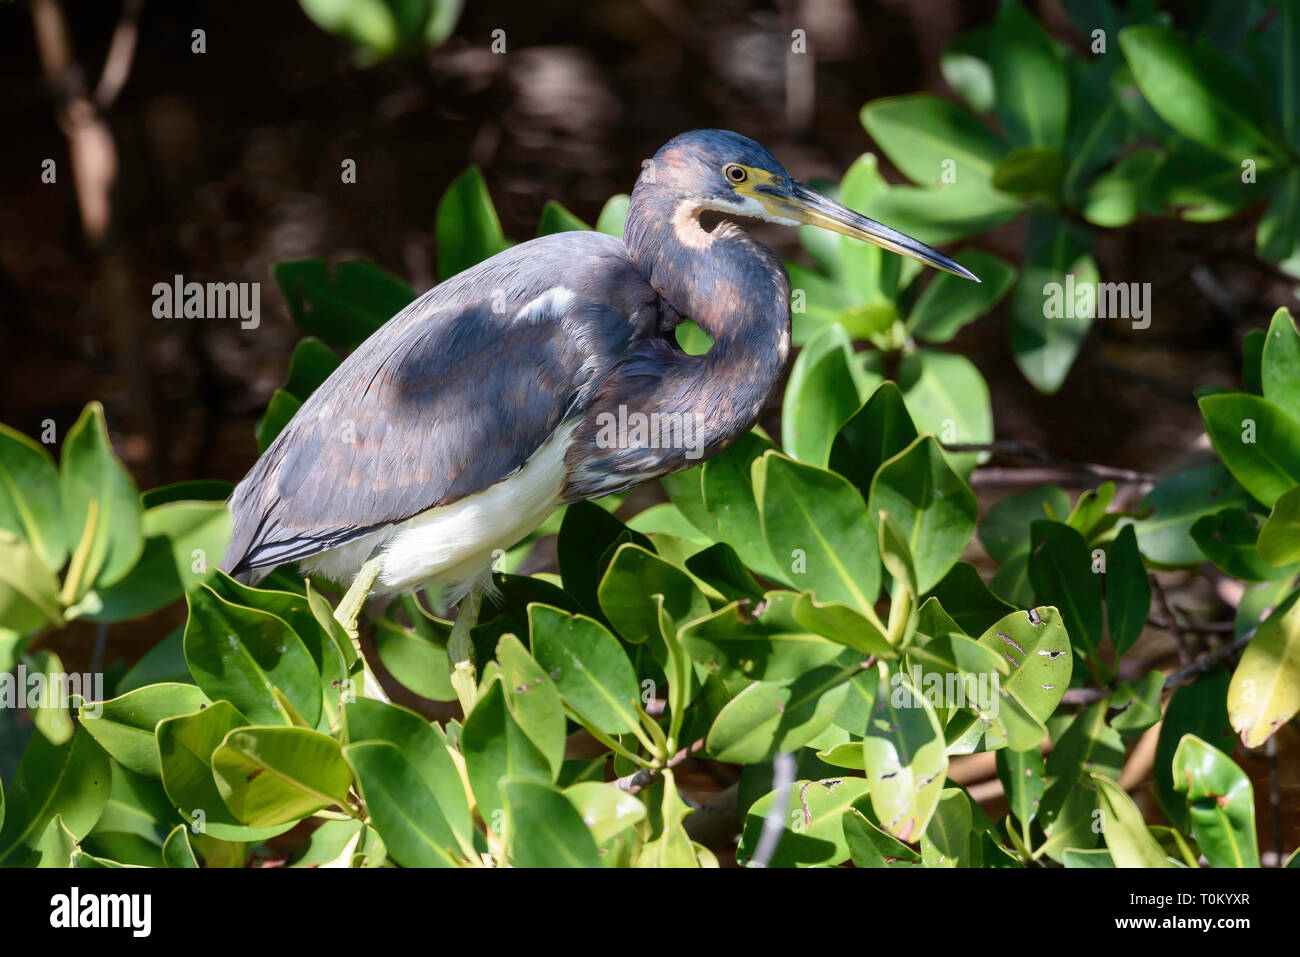 Tricolored heron (Egretta tricolor) in J.N. Ding Darling National Wildlife Refuge, Sanibel Island, Florida, USA - Stock Image